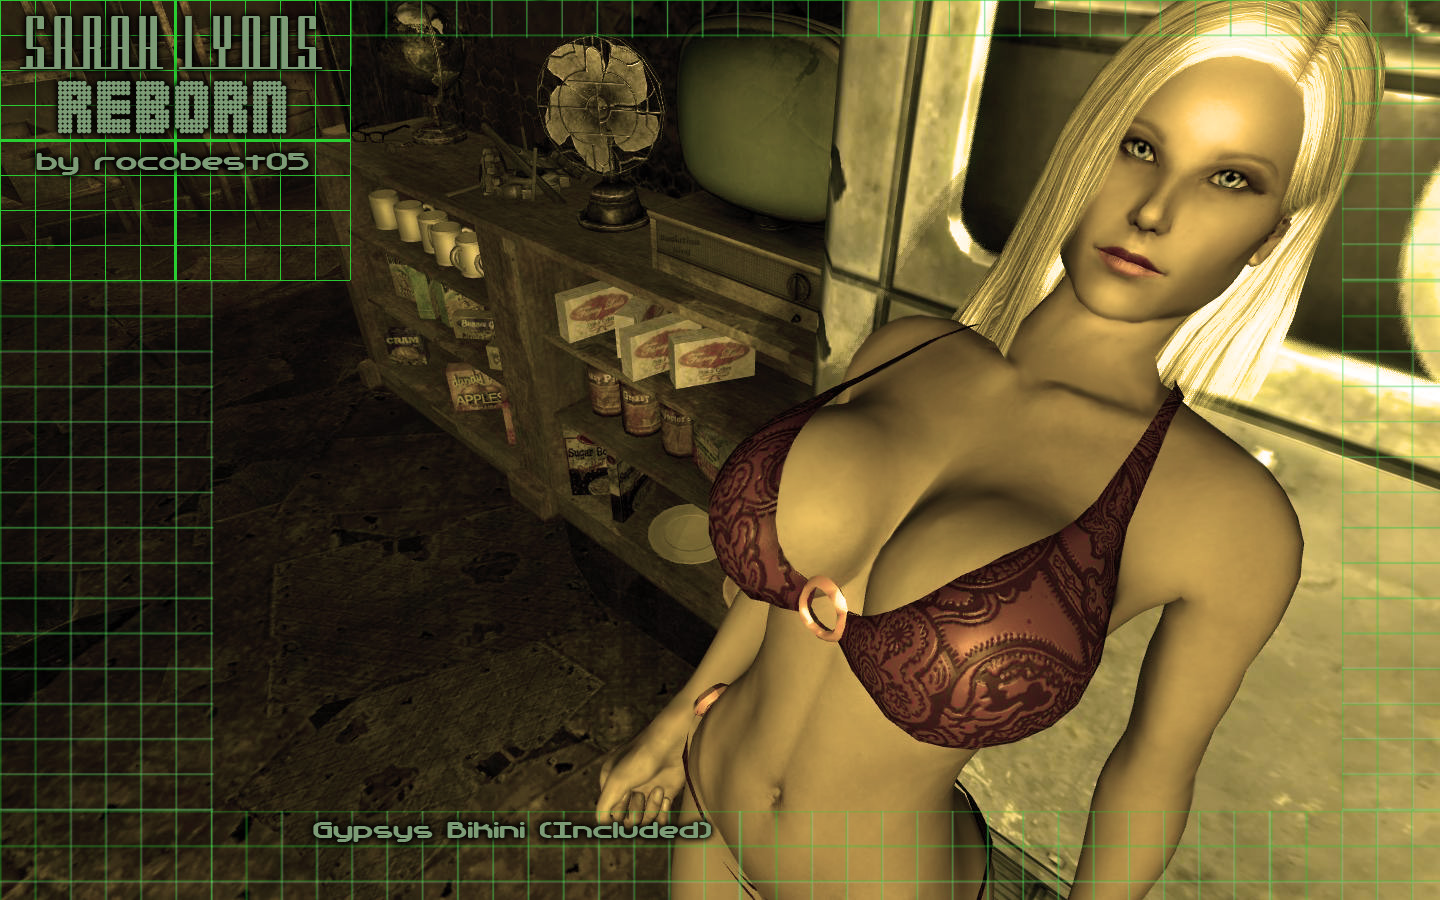 Fallout 3 brianna porn nude galleries